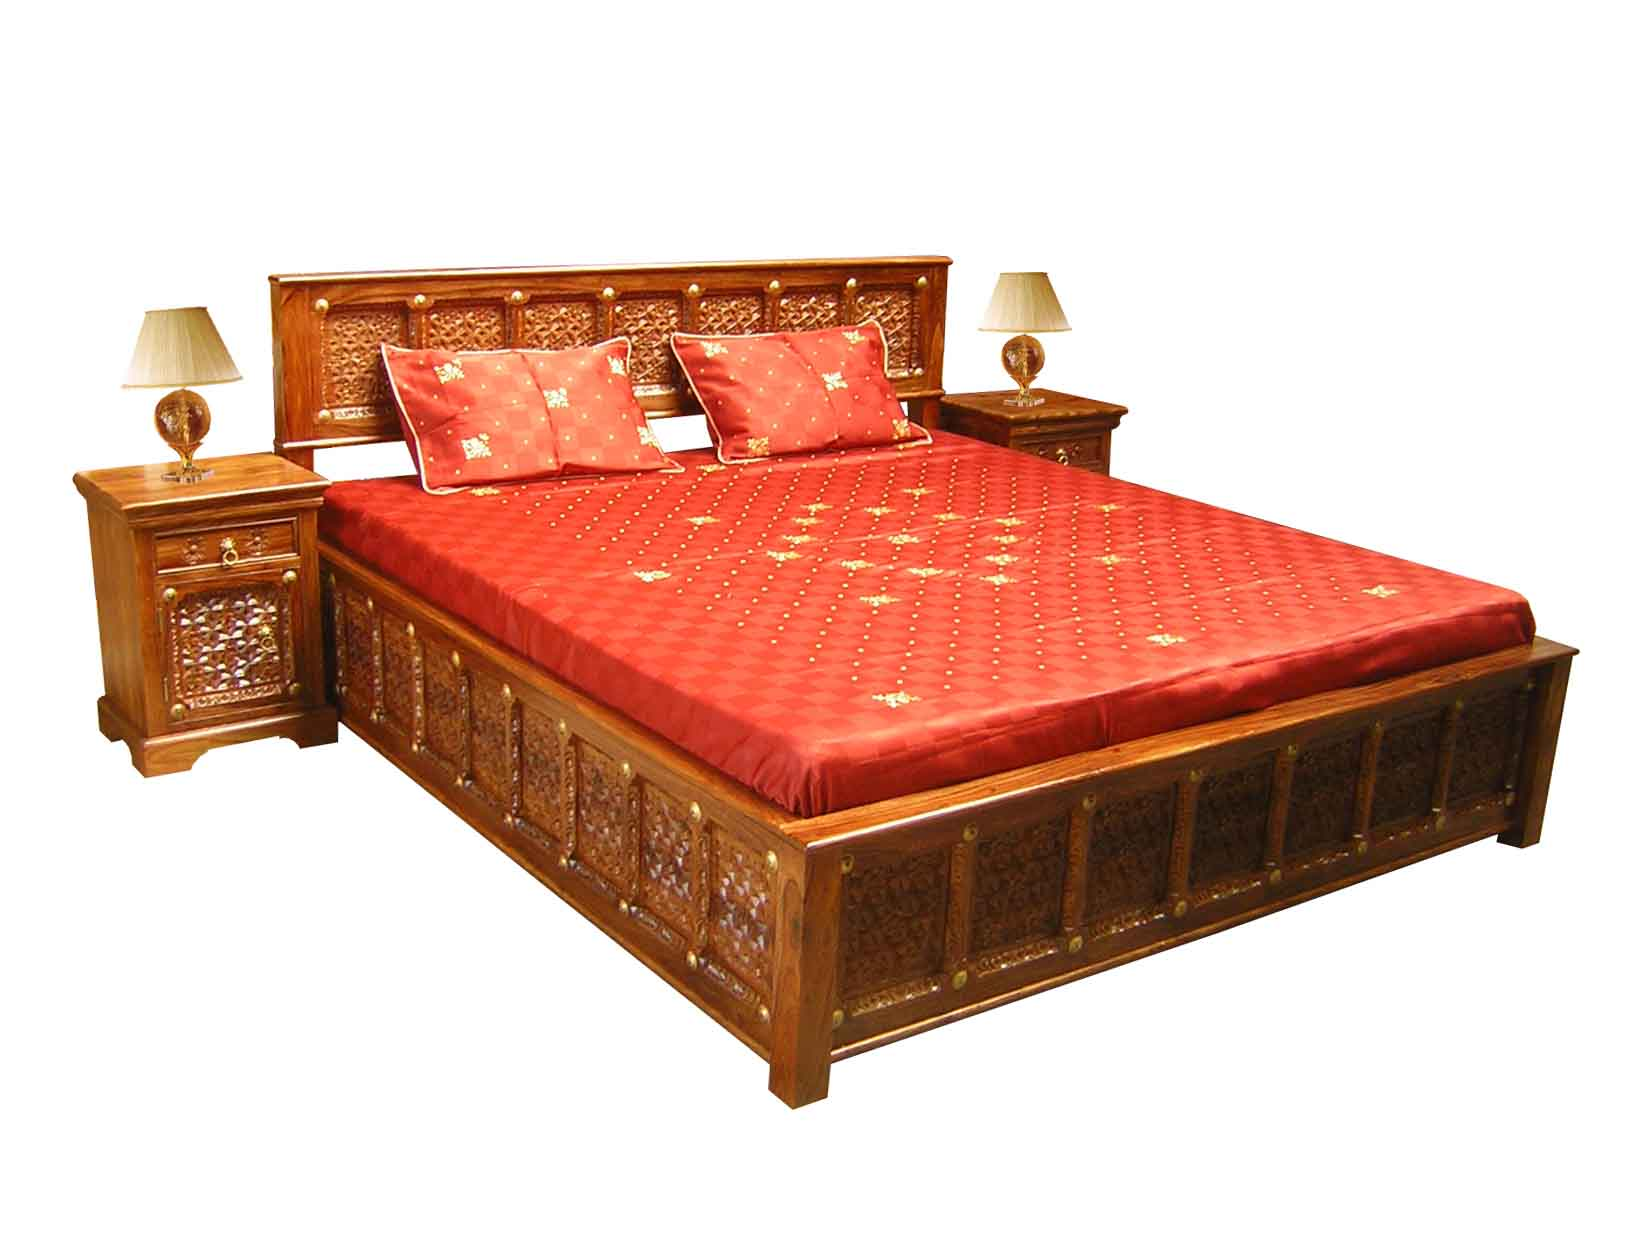 Sell wooden handicraft furniture photo detailed about sell wooden handicraft furniture picture Www wooden furniture com